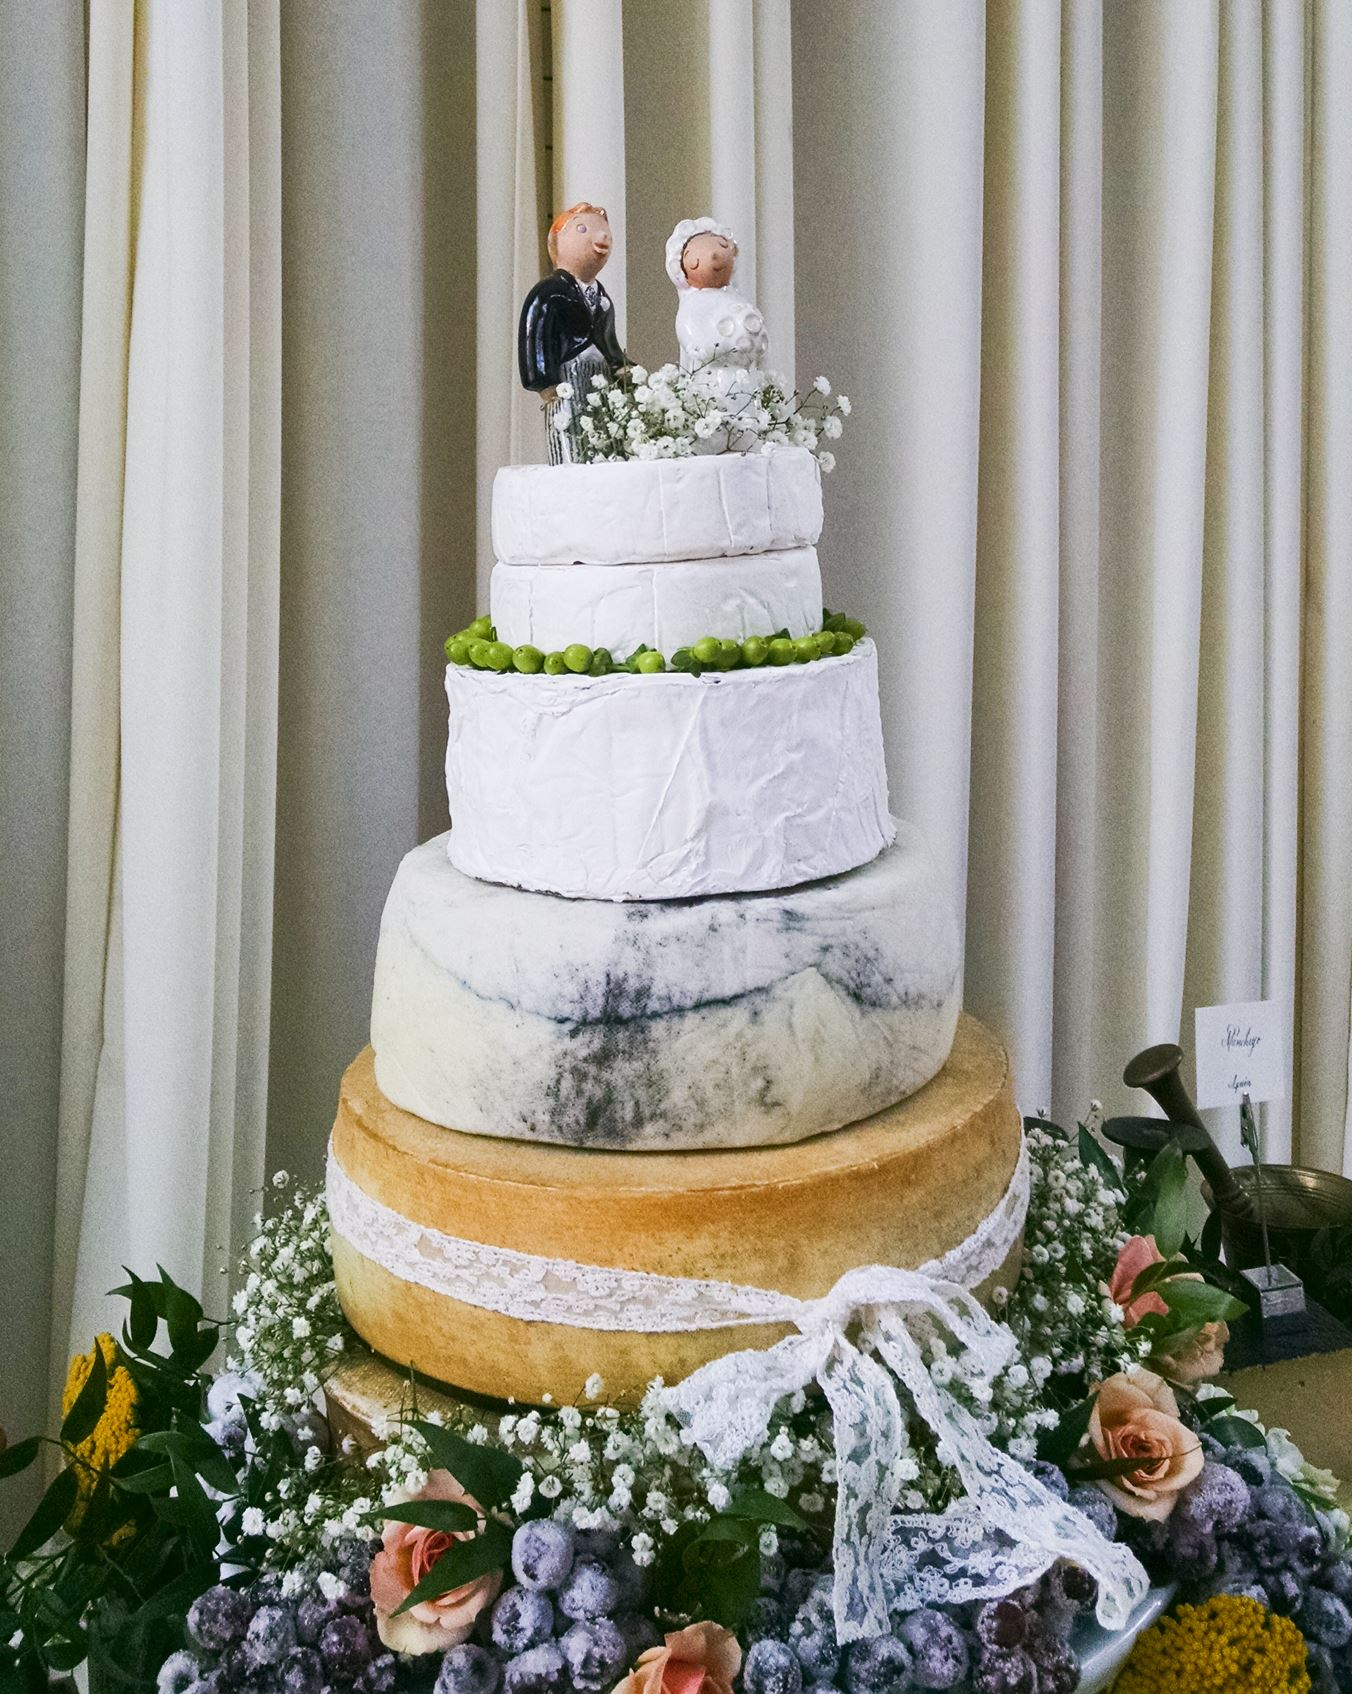 marketing plan wedding cakes by Creating wedding cakes is sweet work you get to make the grand centerpiece of confectionery delight for couples getting married empower your business with the opportunity for sweet success through fresh marketing and selling ideas for your wedding cakes.